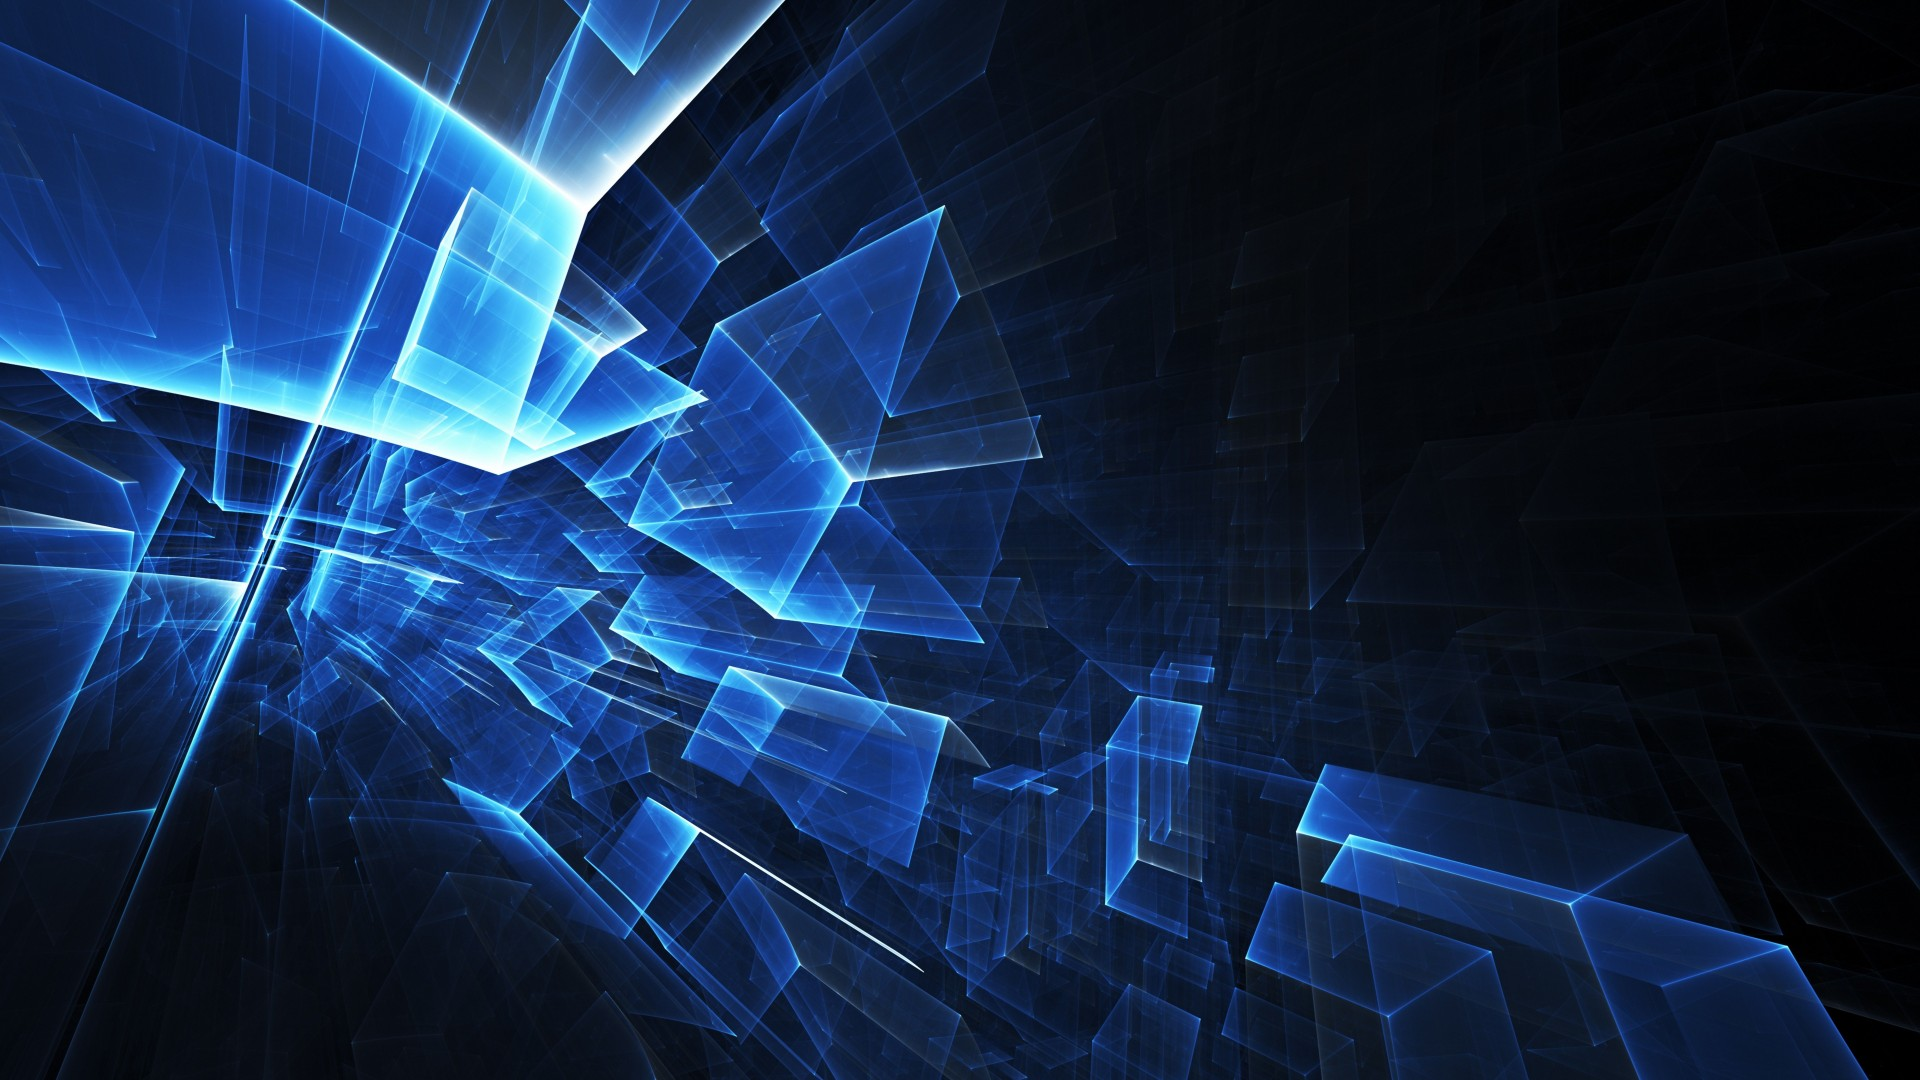 polygon wallpaper abstract backgrounds polygon 3d